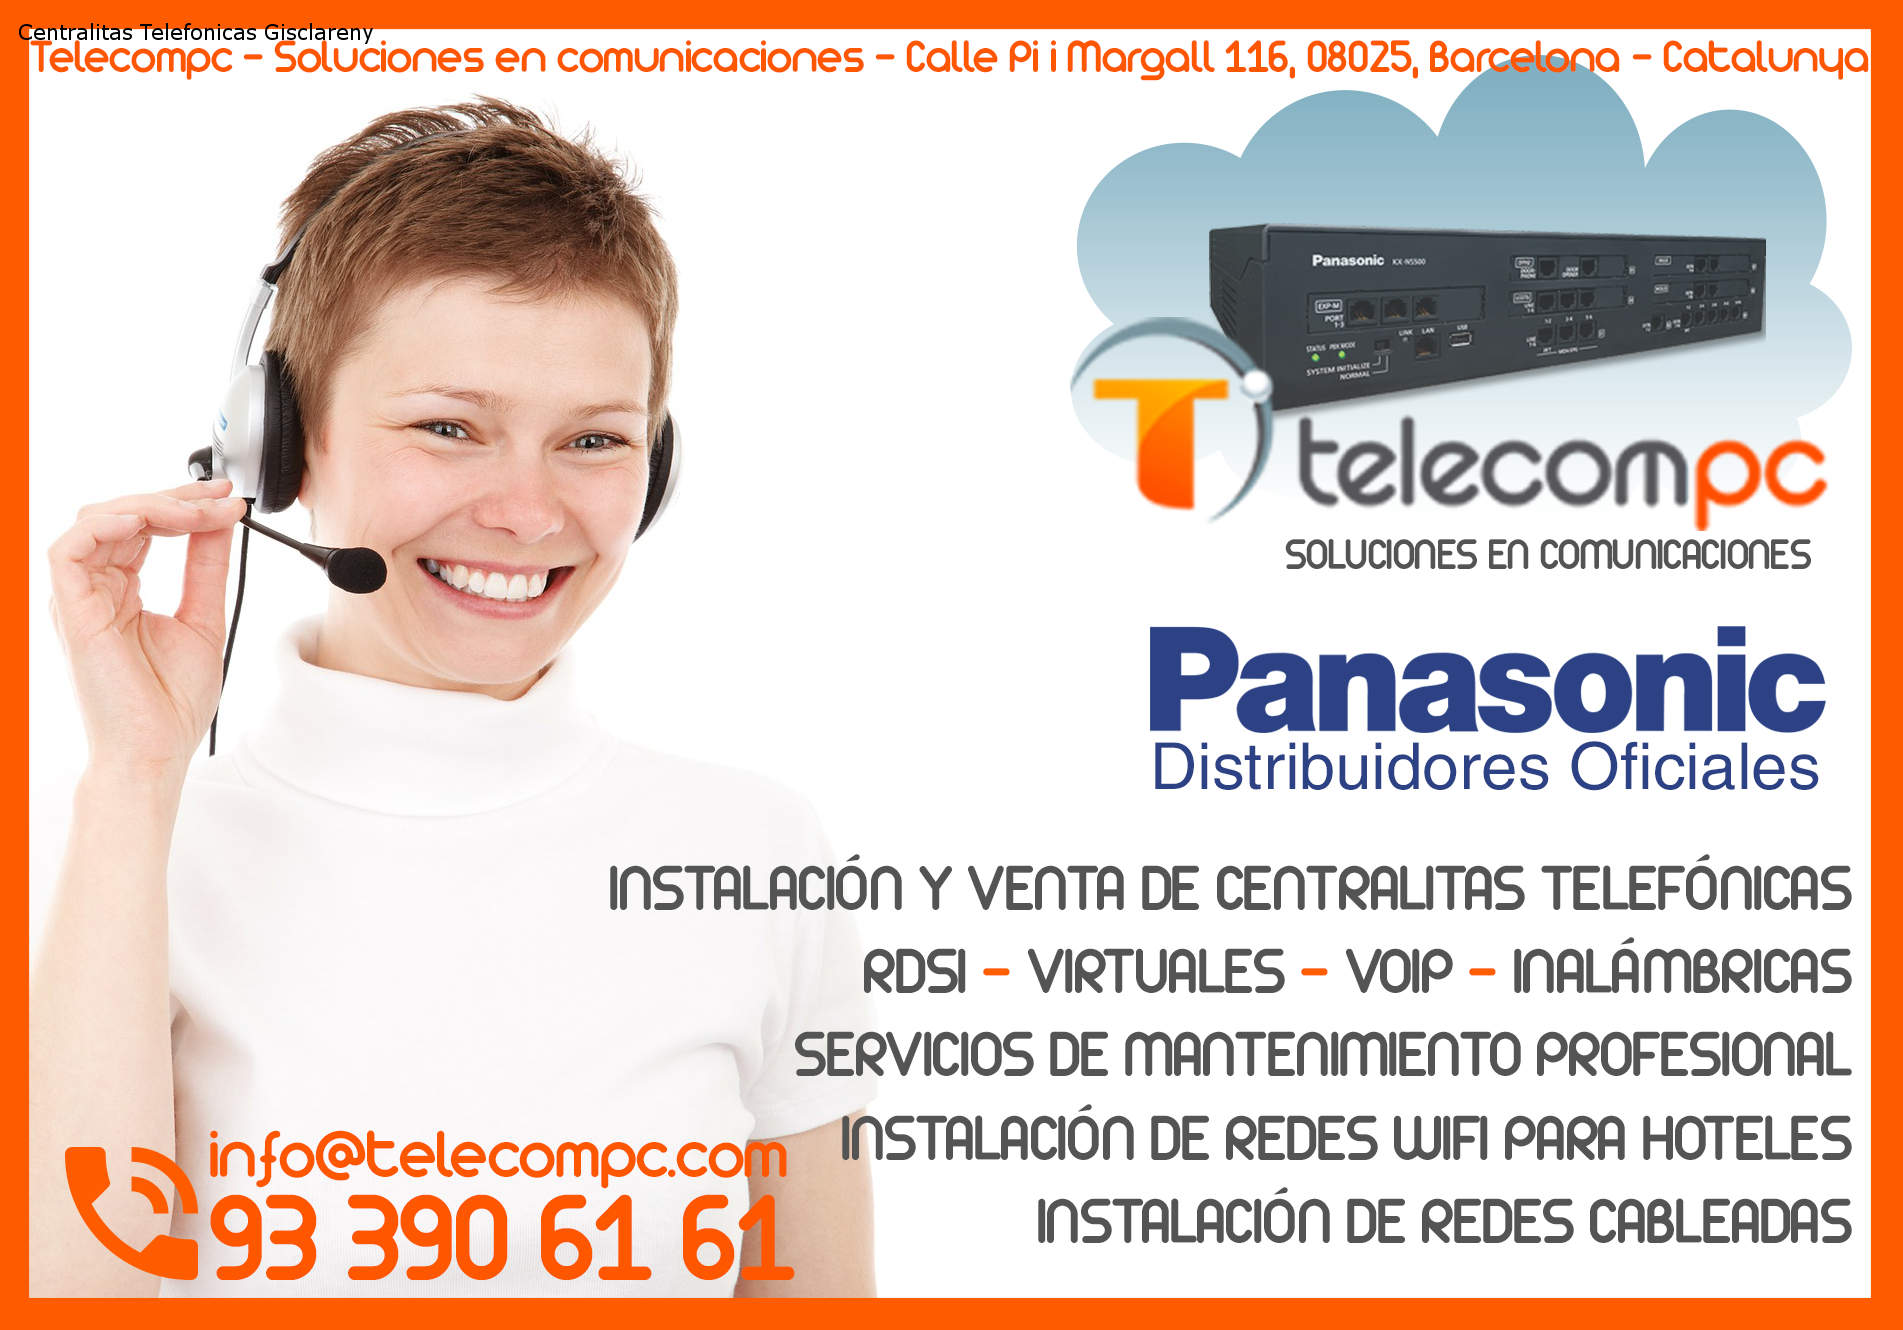 Centralitas Telefonicas Gisclareny